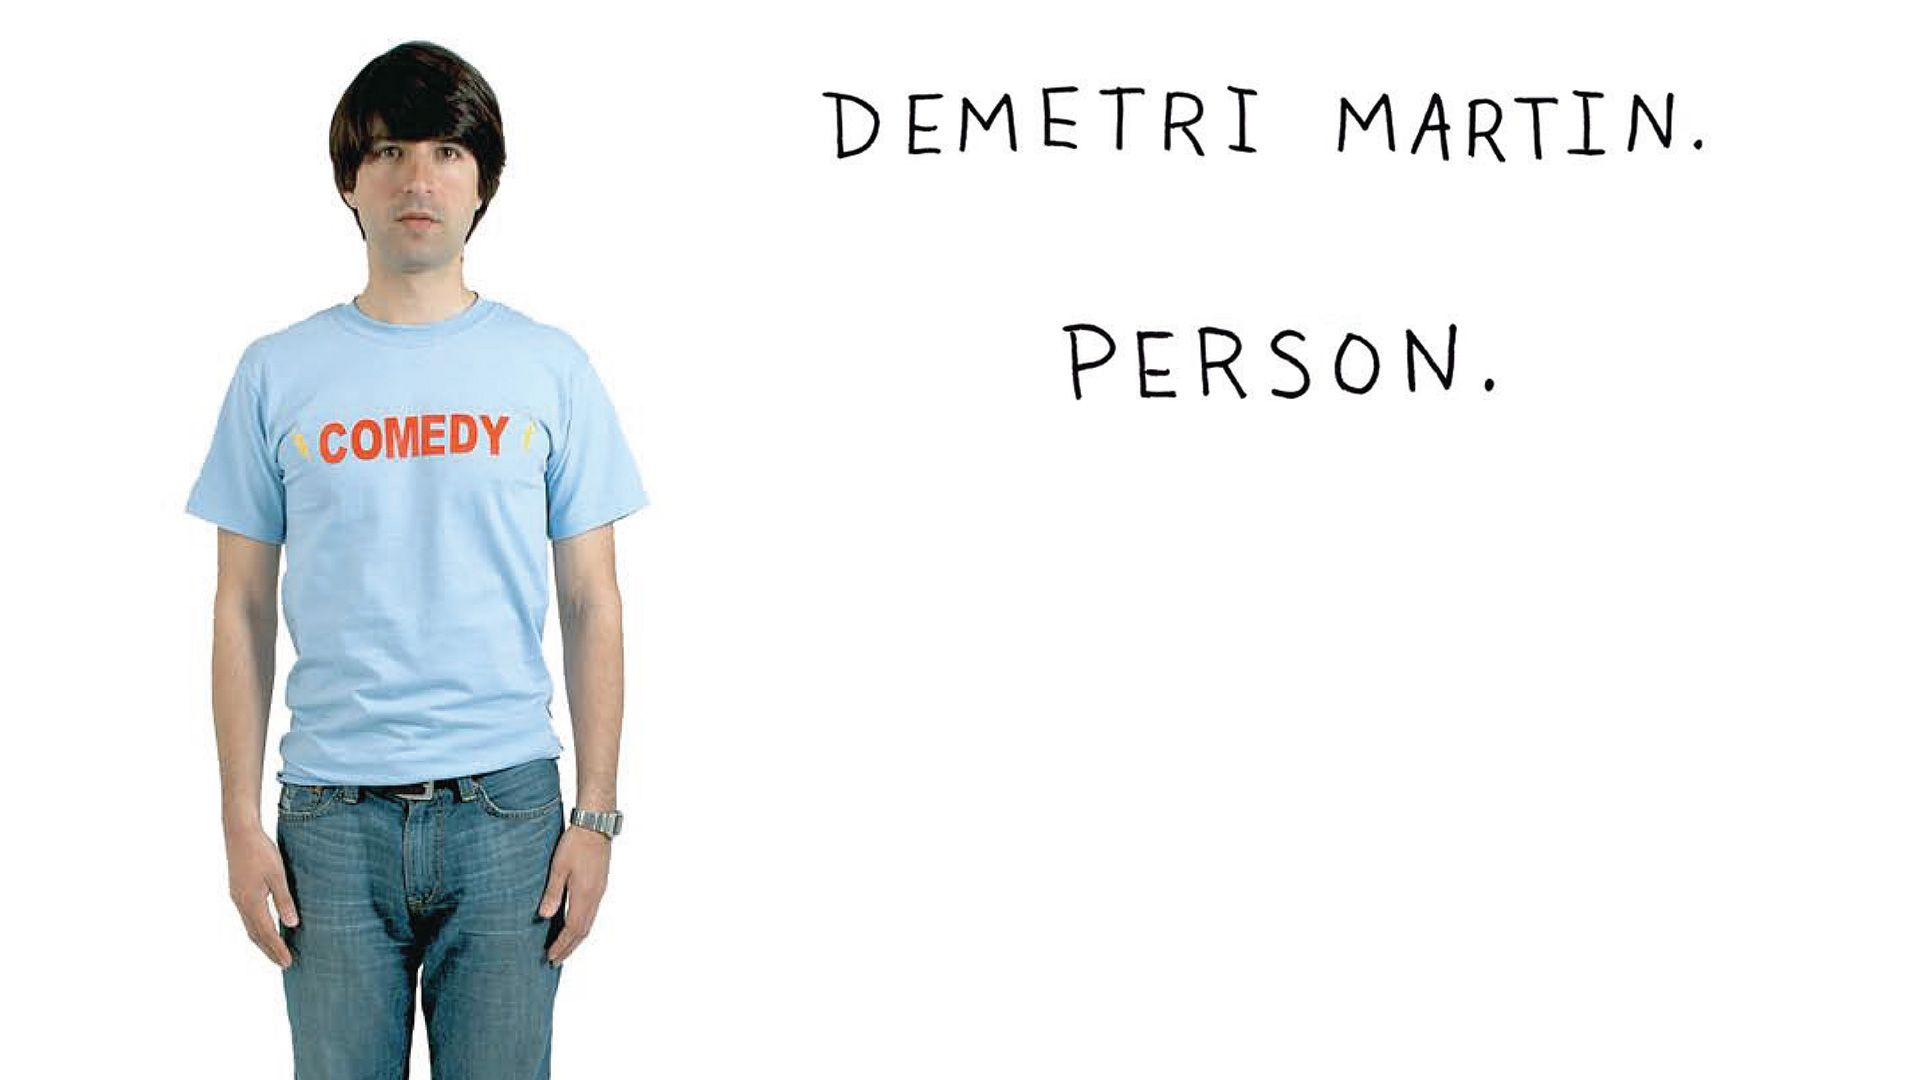 demetri martin essay Dates and cities for demetri martin's let's get awkward stand up tour .